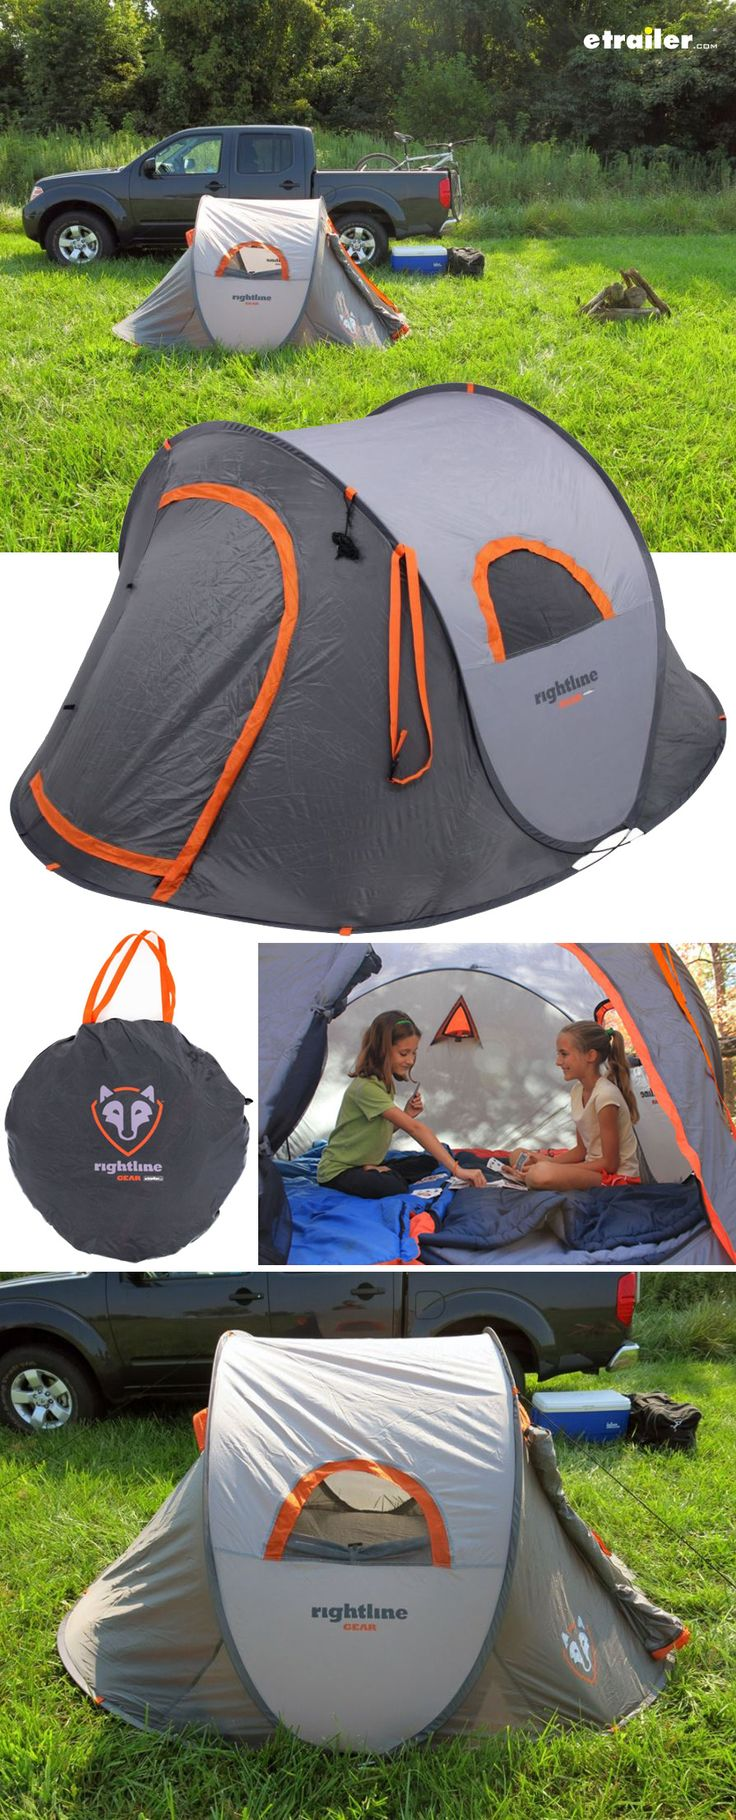 Pop-Up tent goes up in seconds! Packs small and super light for easy transport and storage.